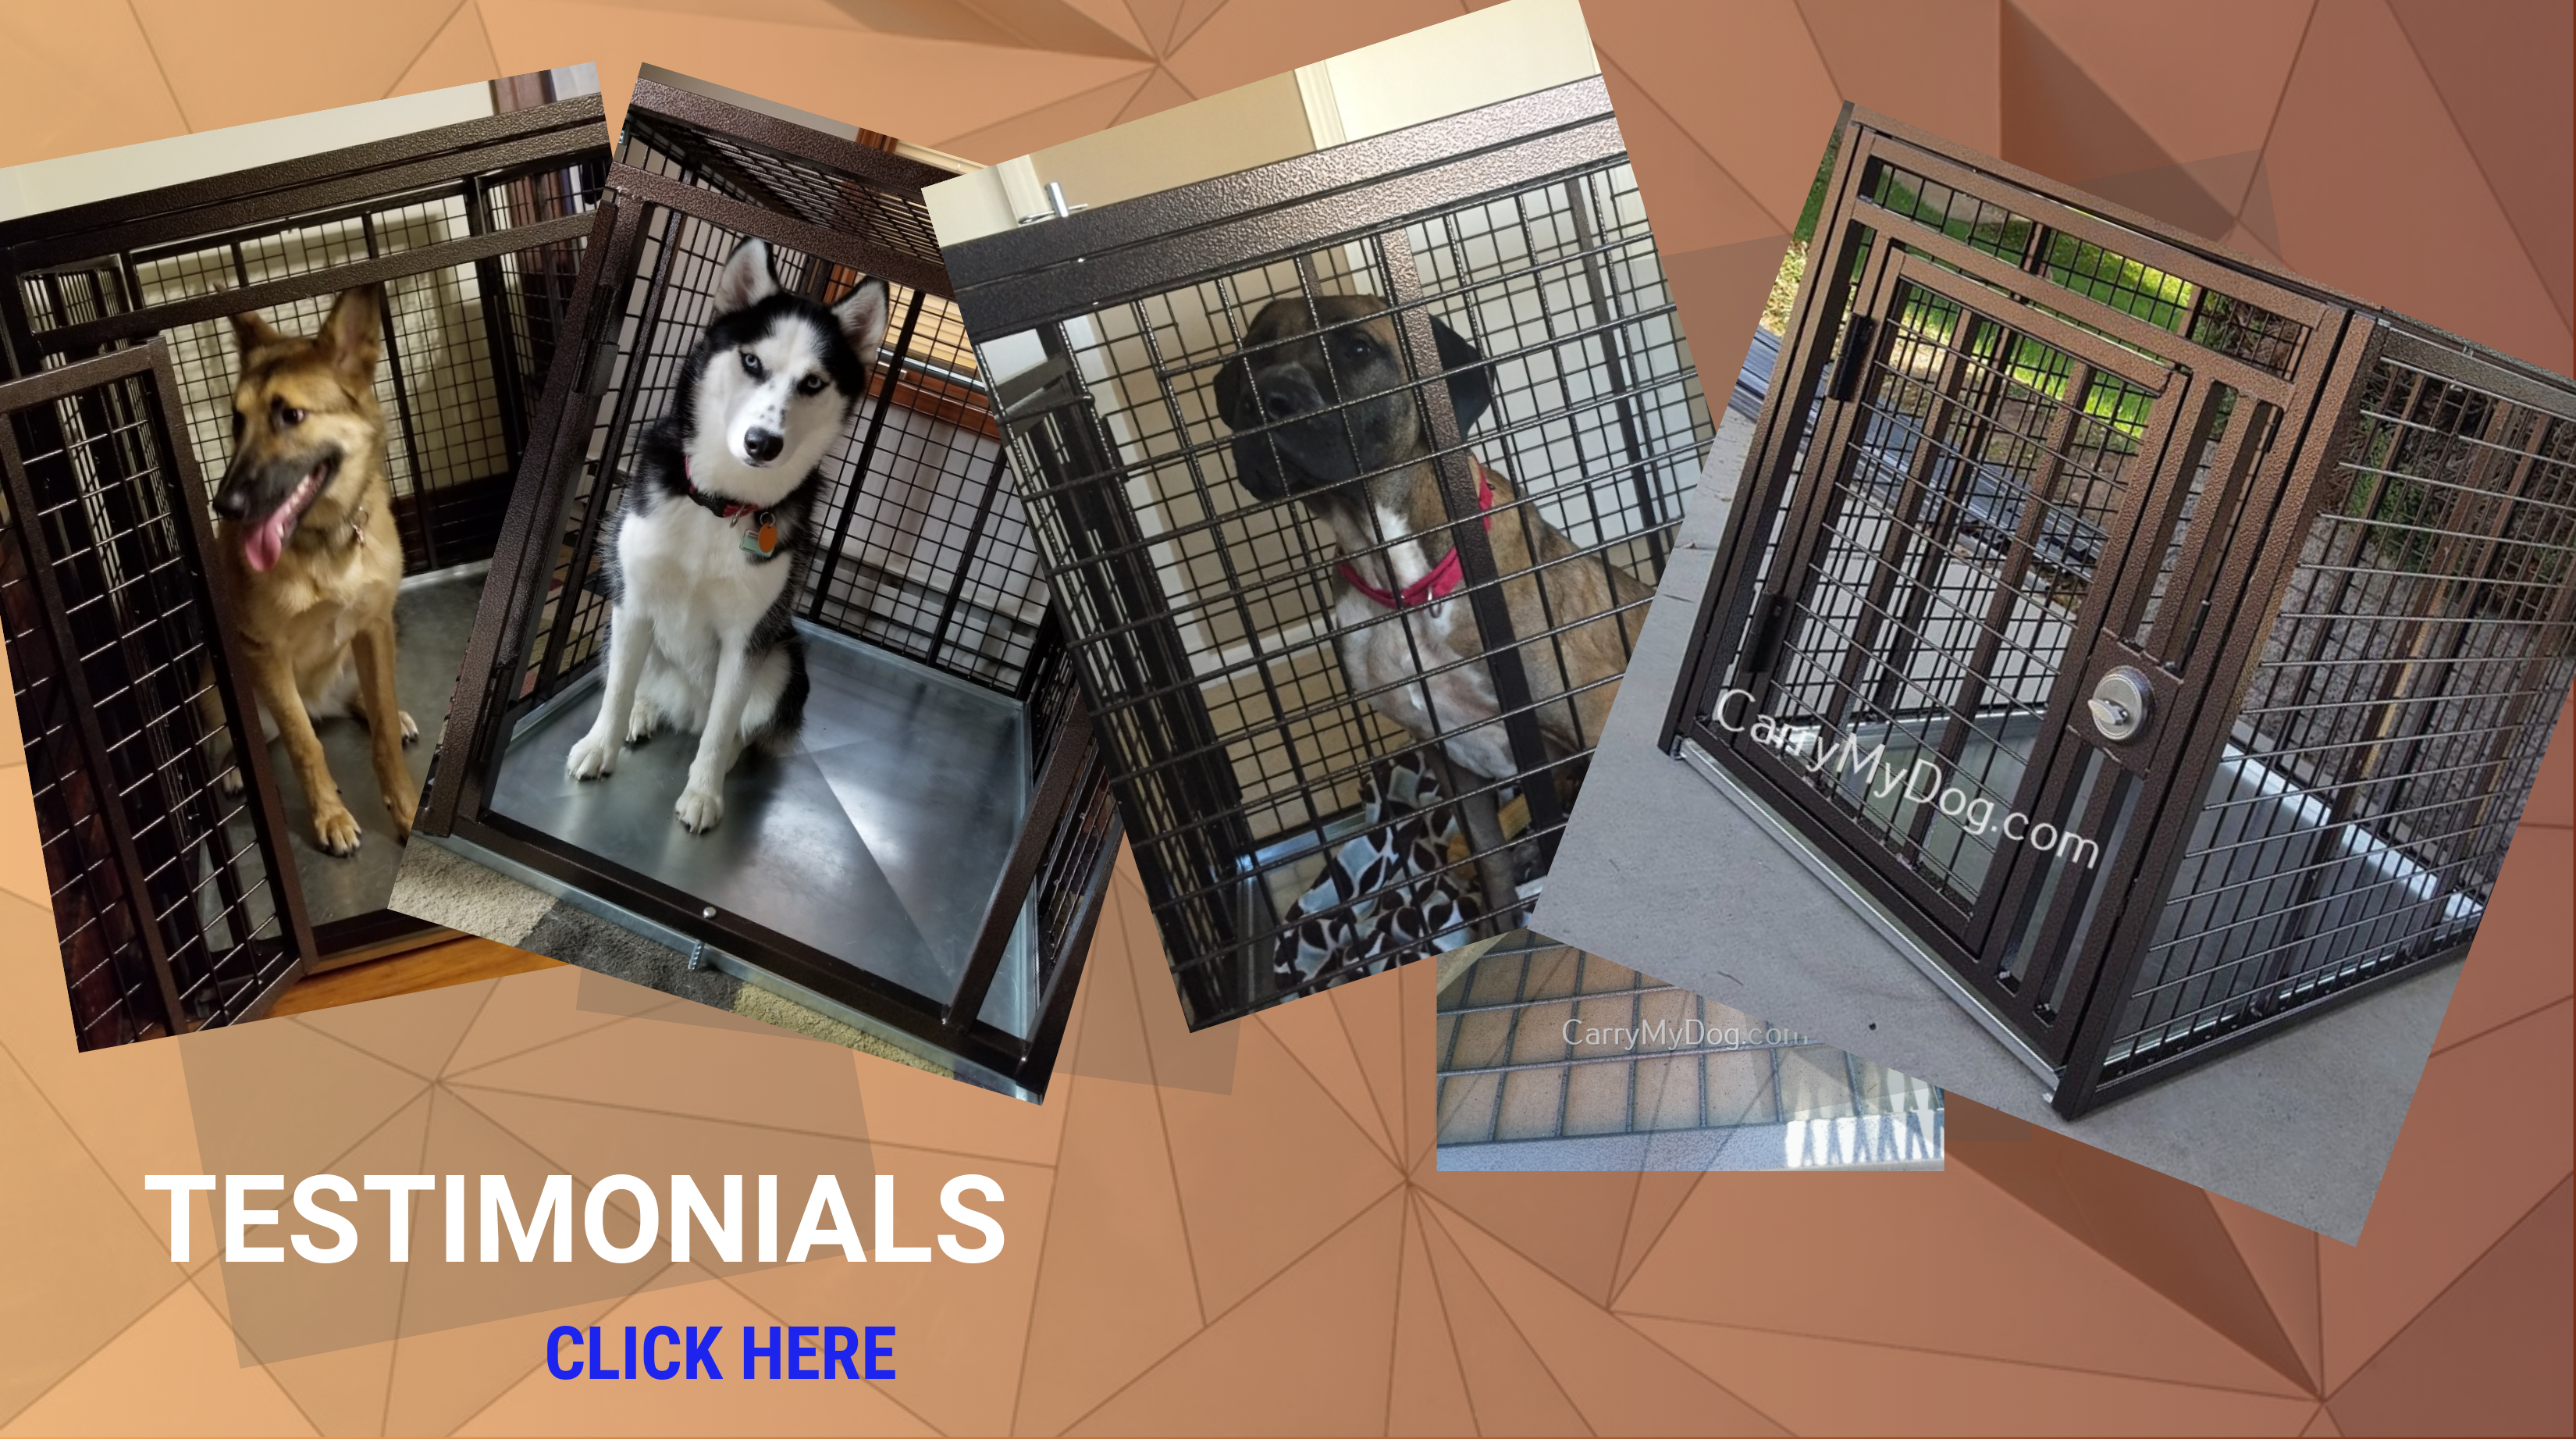 Testimonials for Xtreme heavy duty dog crates sold exclusively by carrymydog.com